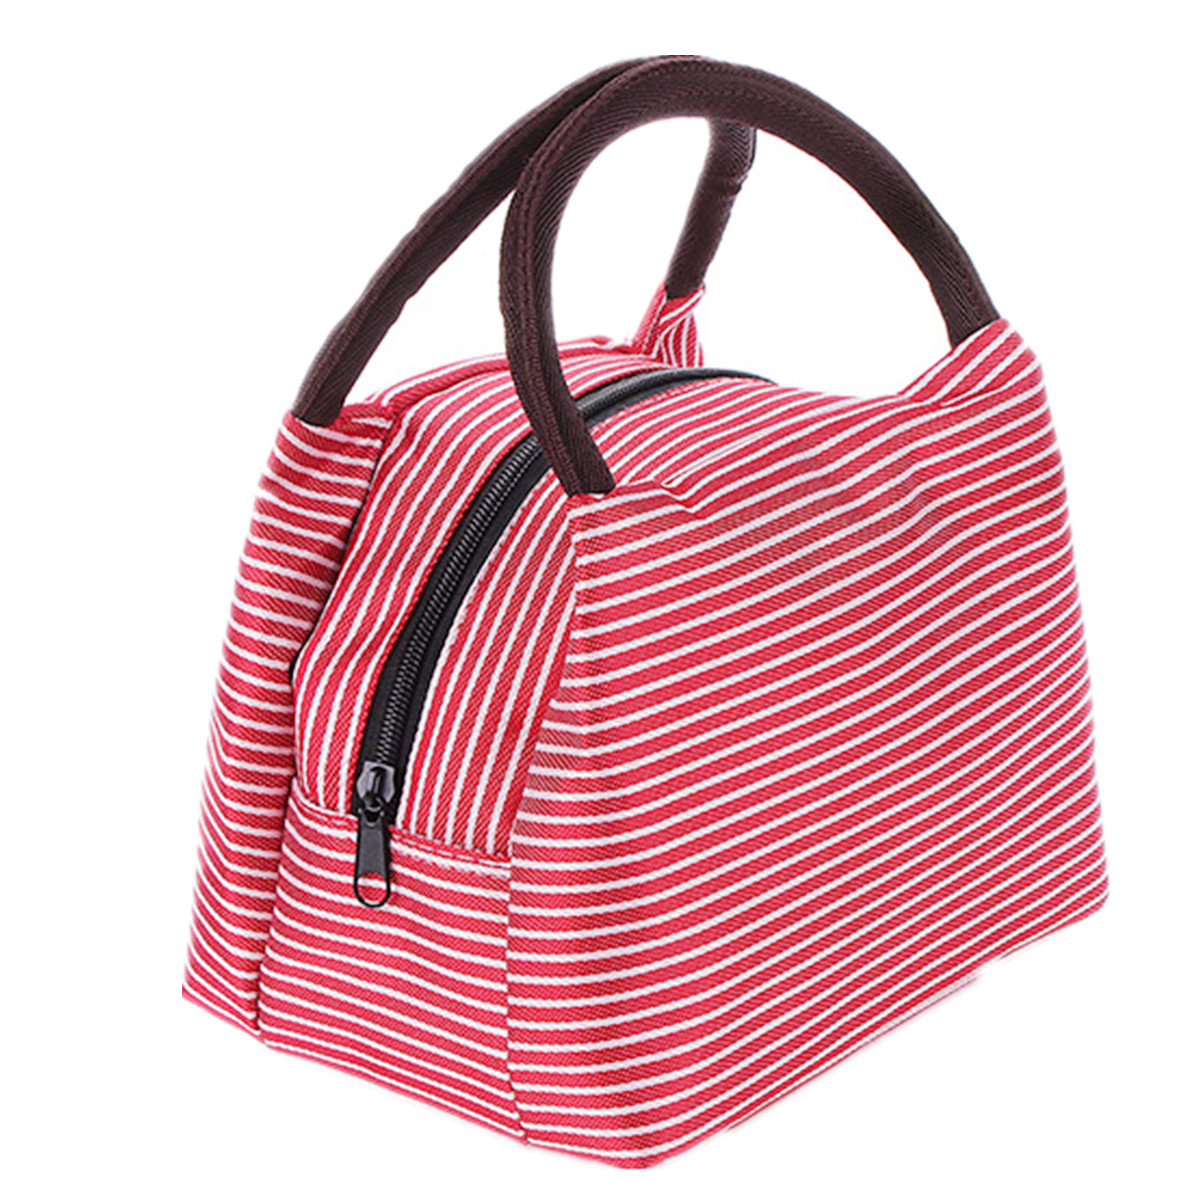 Portable Outdoor Picnic Lunch Dinner Bag Container Box Travel Carry Totes Pouch